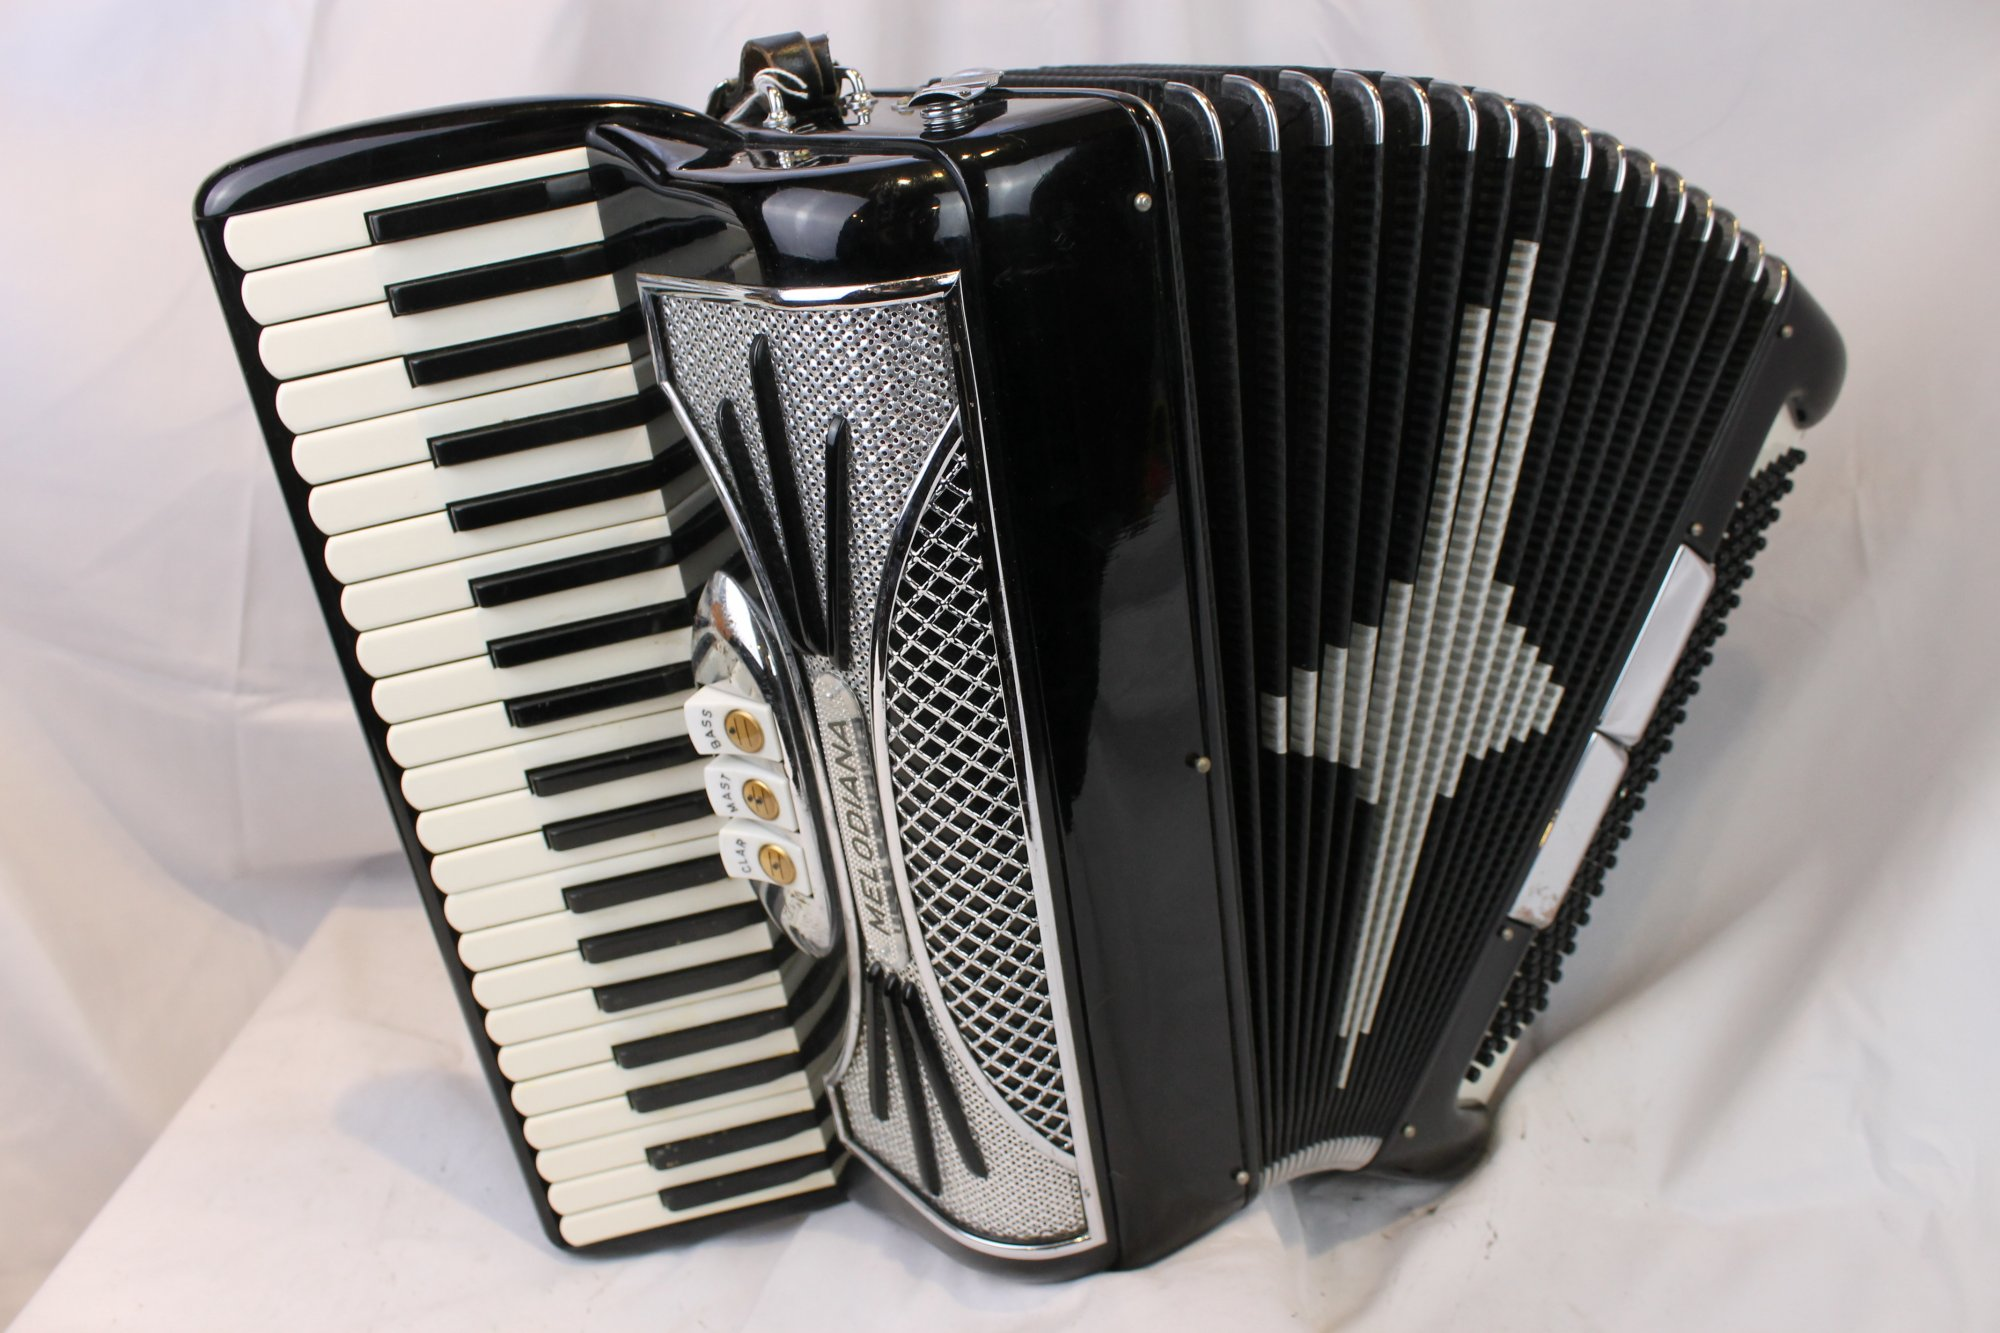 3792 - Black Melodiana Piano Accordion LM 41 120